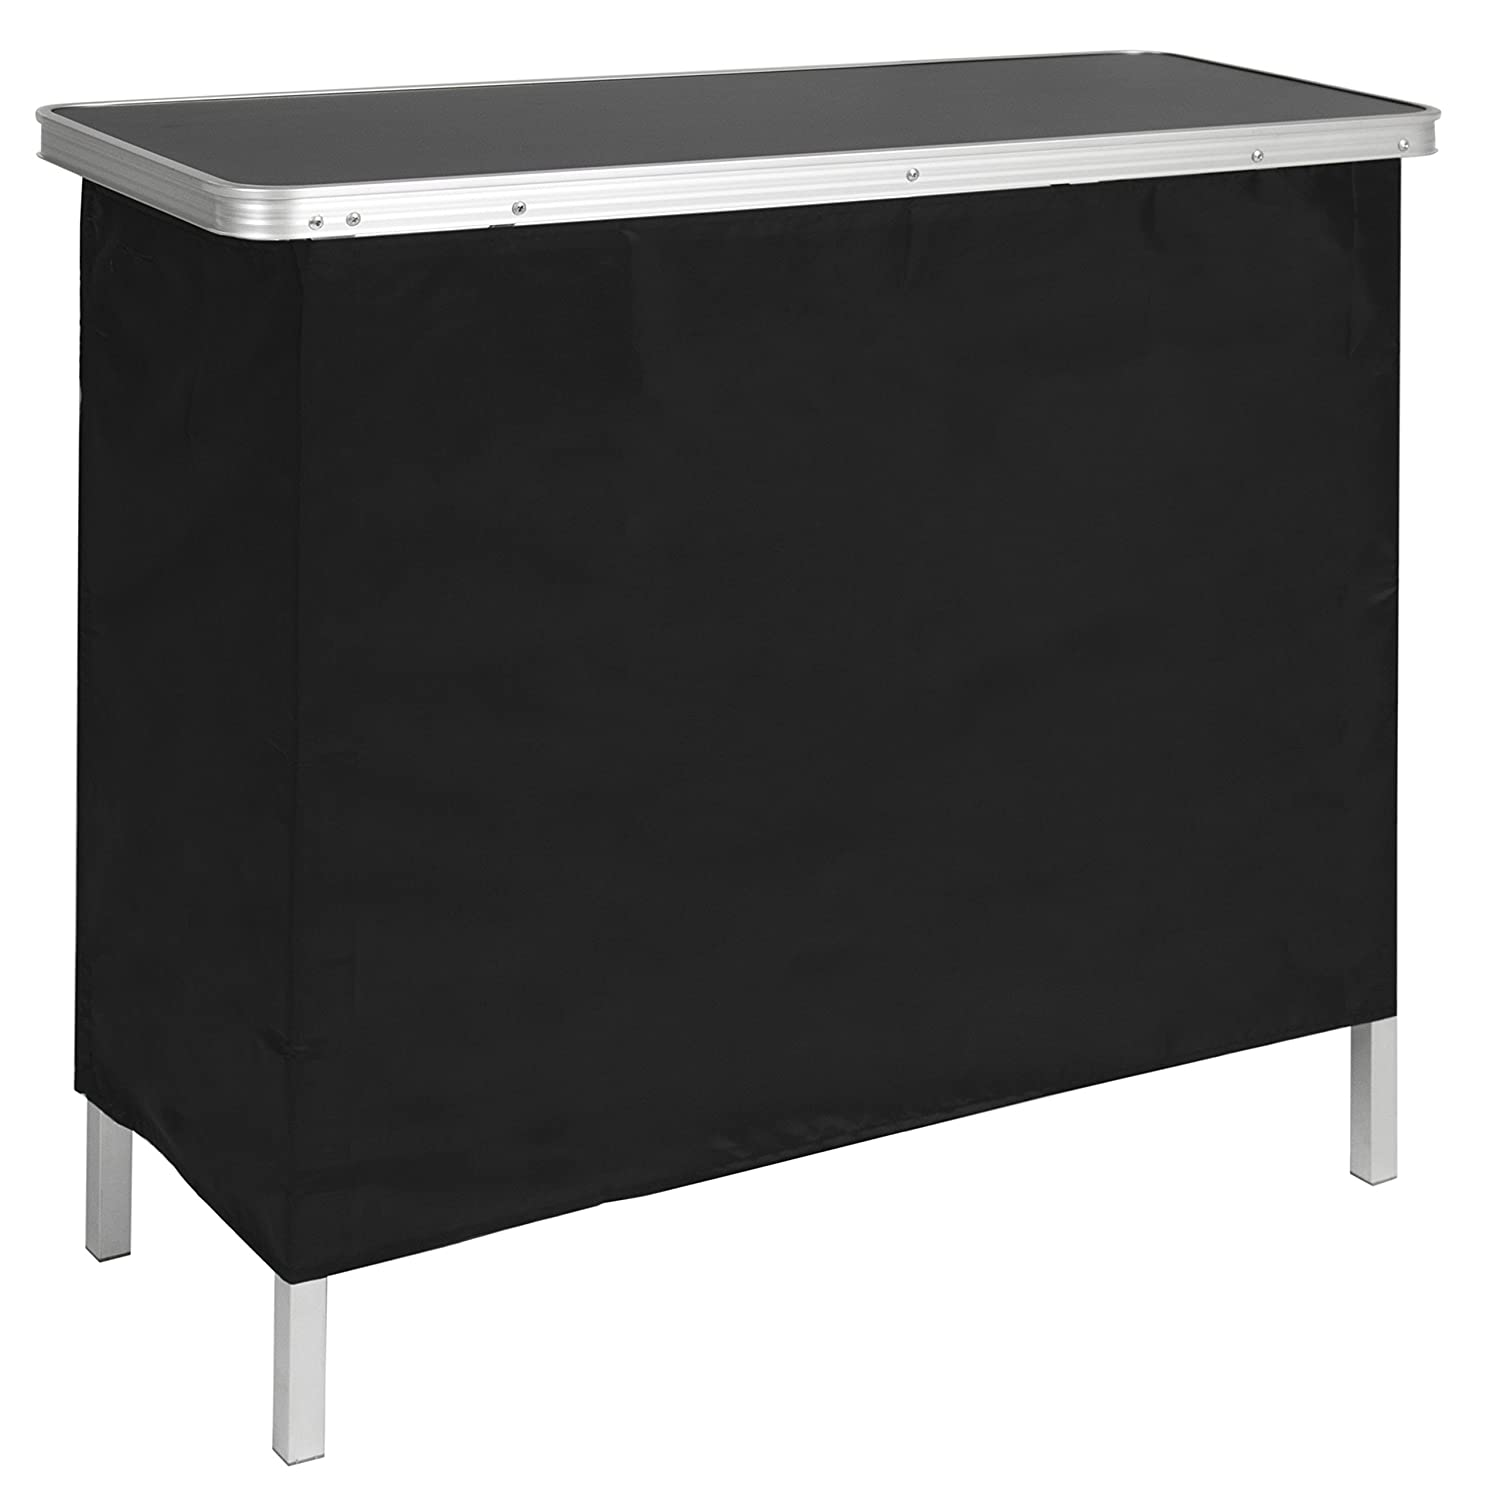 products transforming portable bar co ltd product twbt table counter trendware